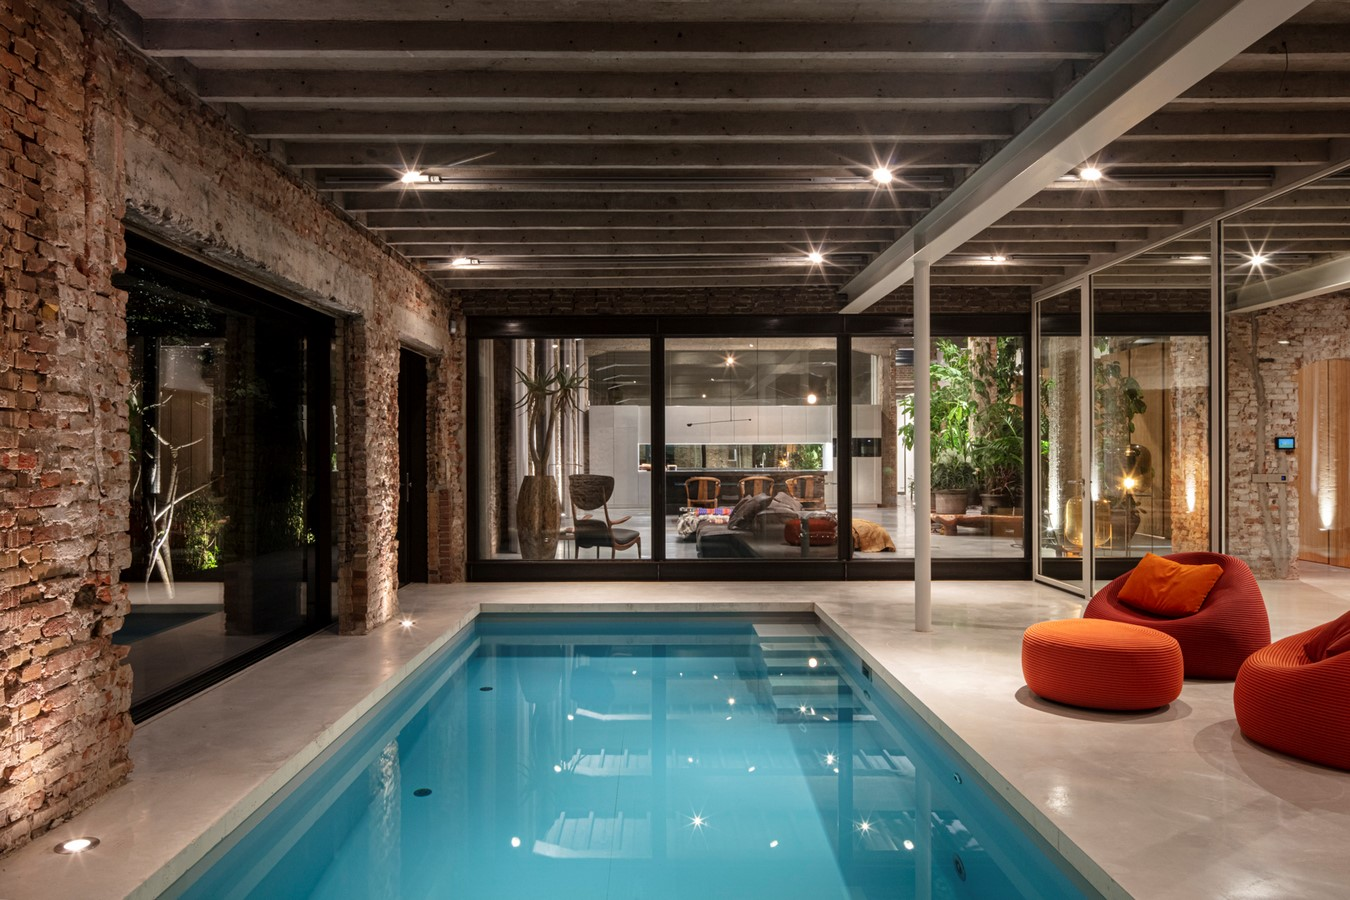 Abandoned 1940s Sports Building converted into New Villa With Naked Brick Walls by MASA Architects - Sheet14